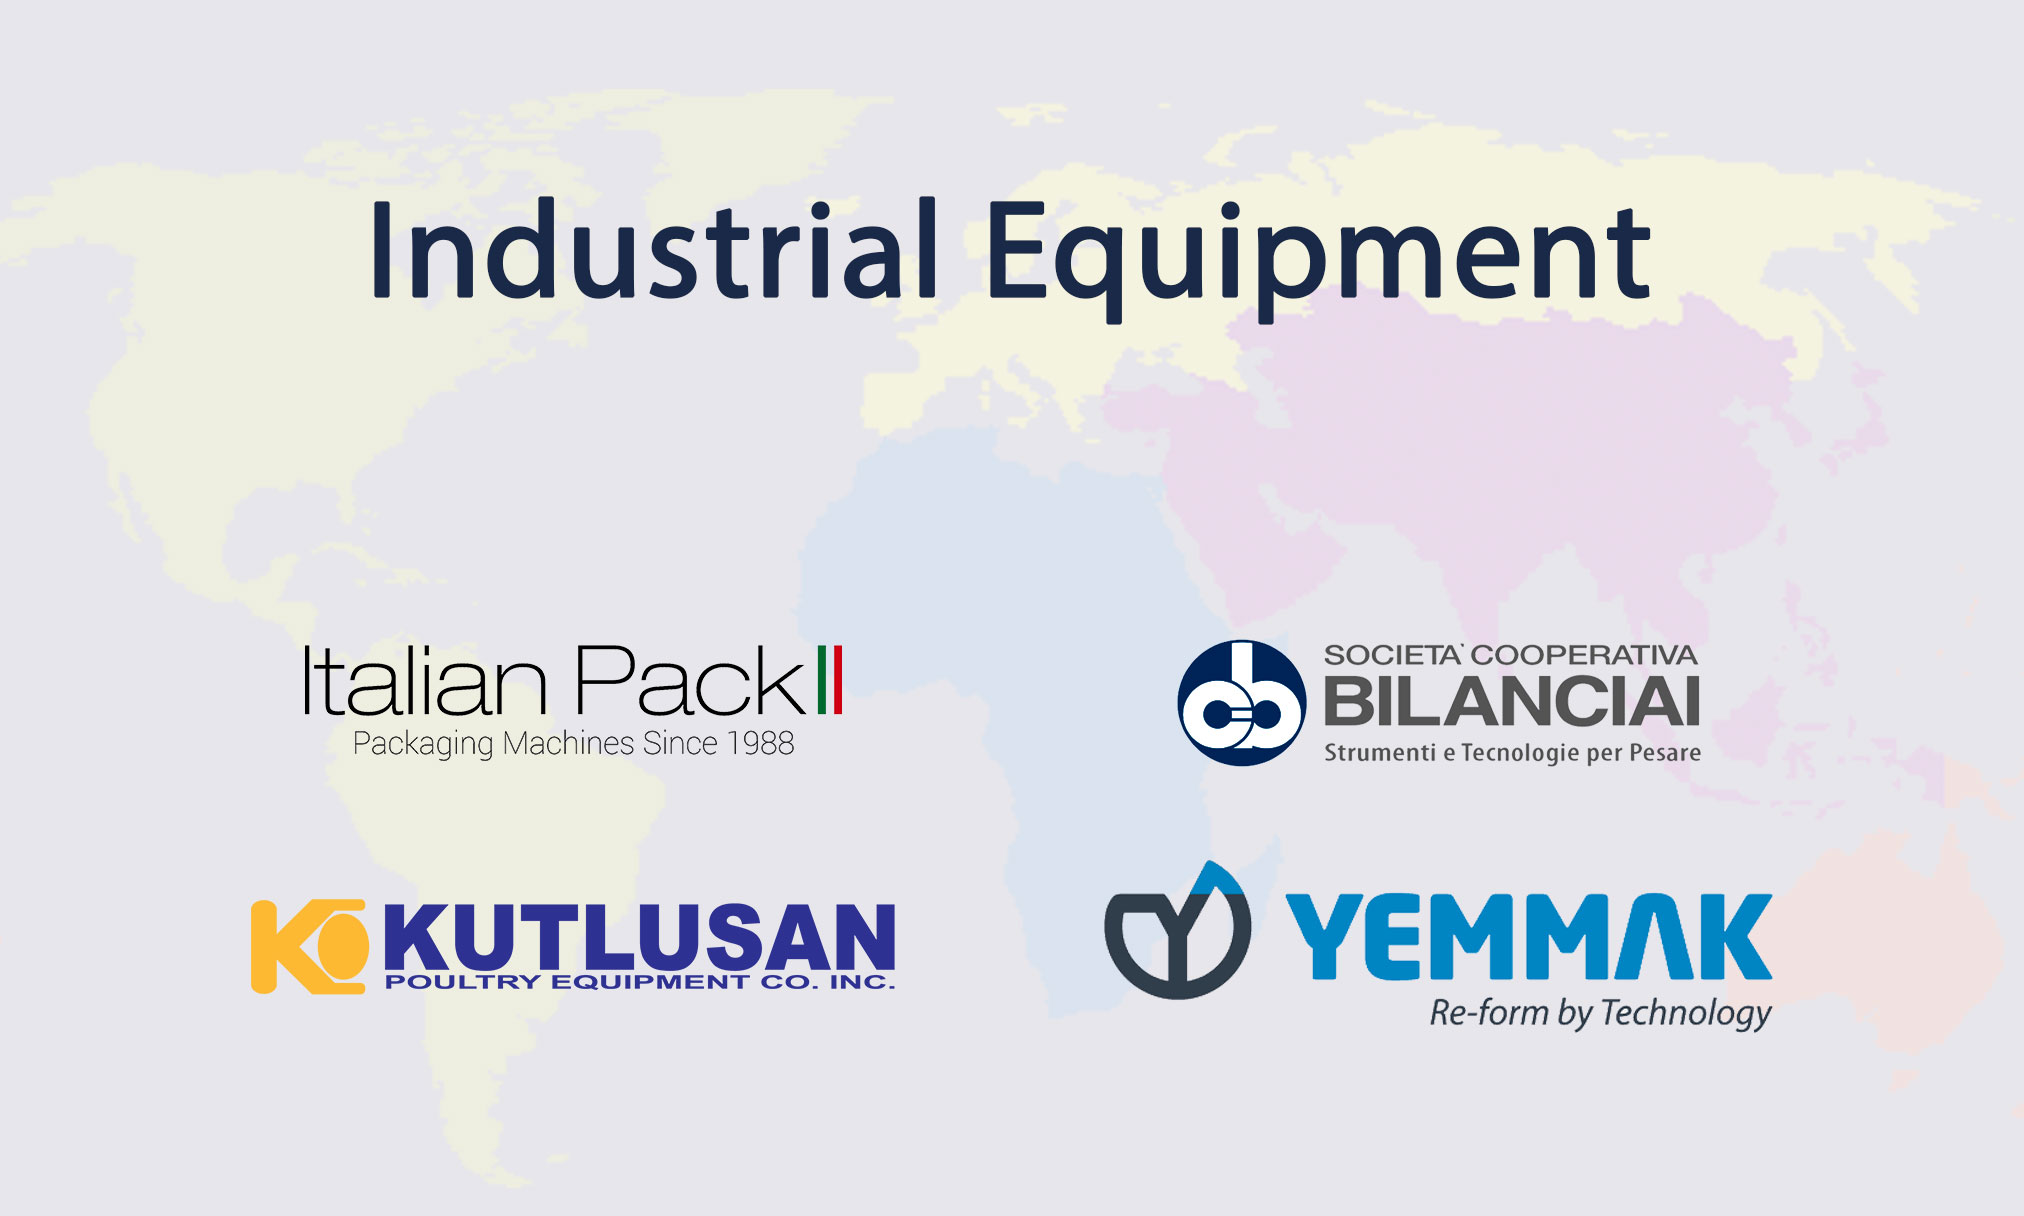 industrial equipment , industrial , yemmak , kutlusan